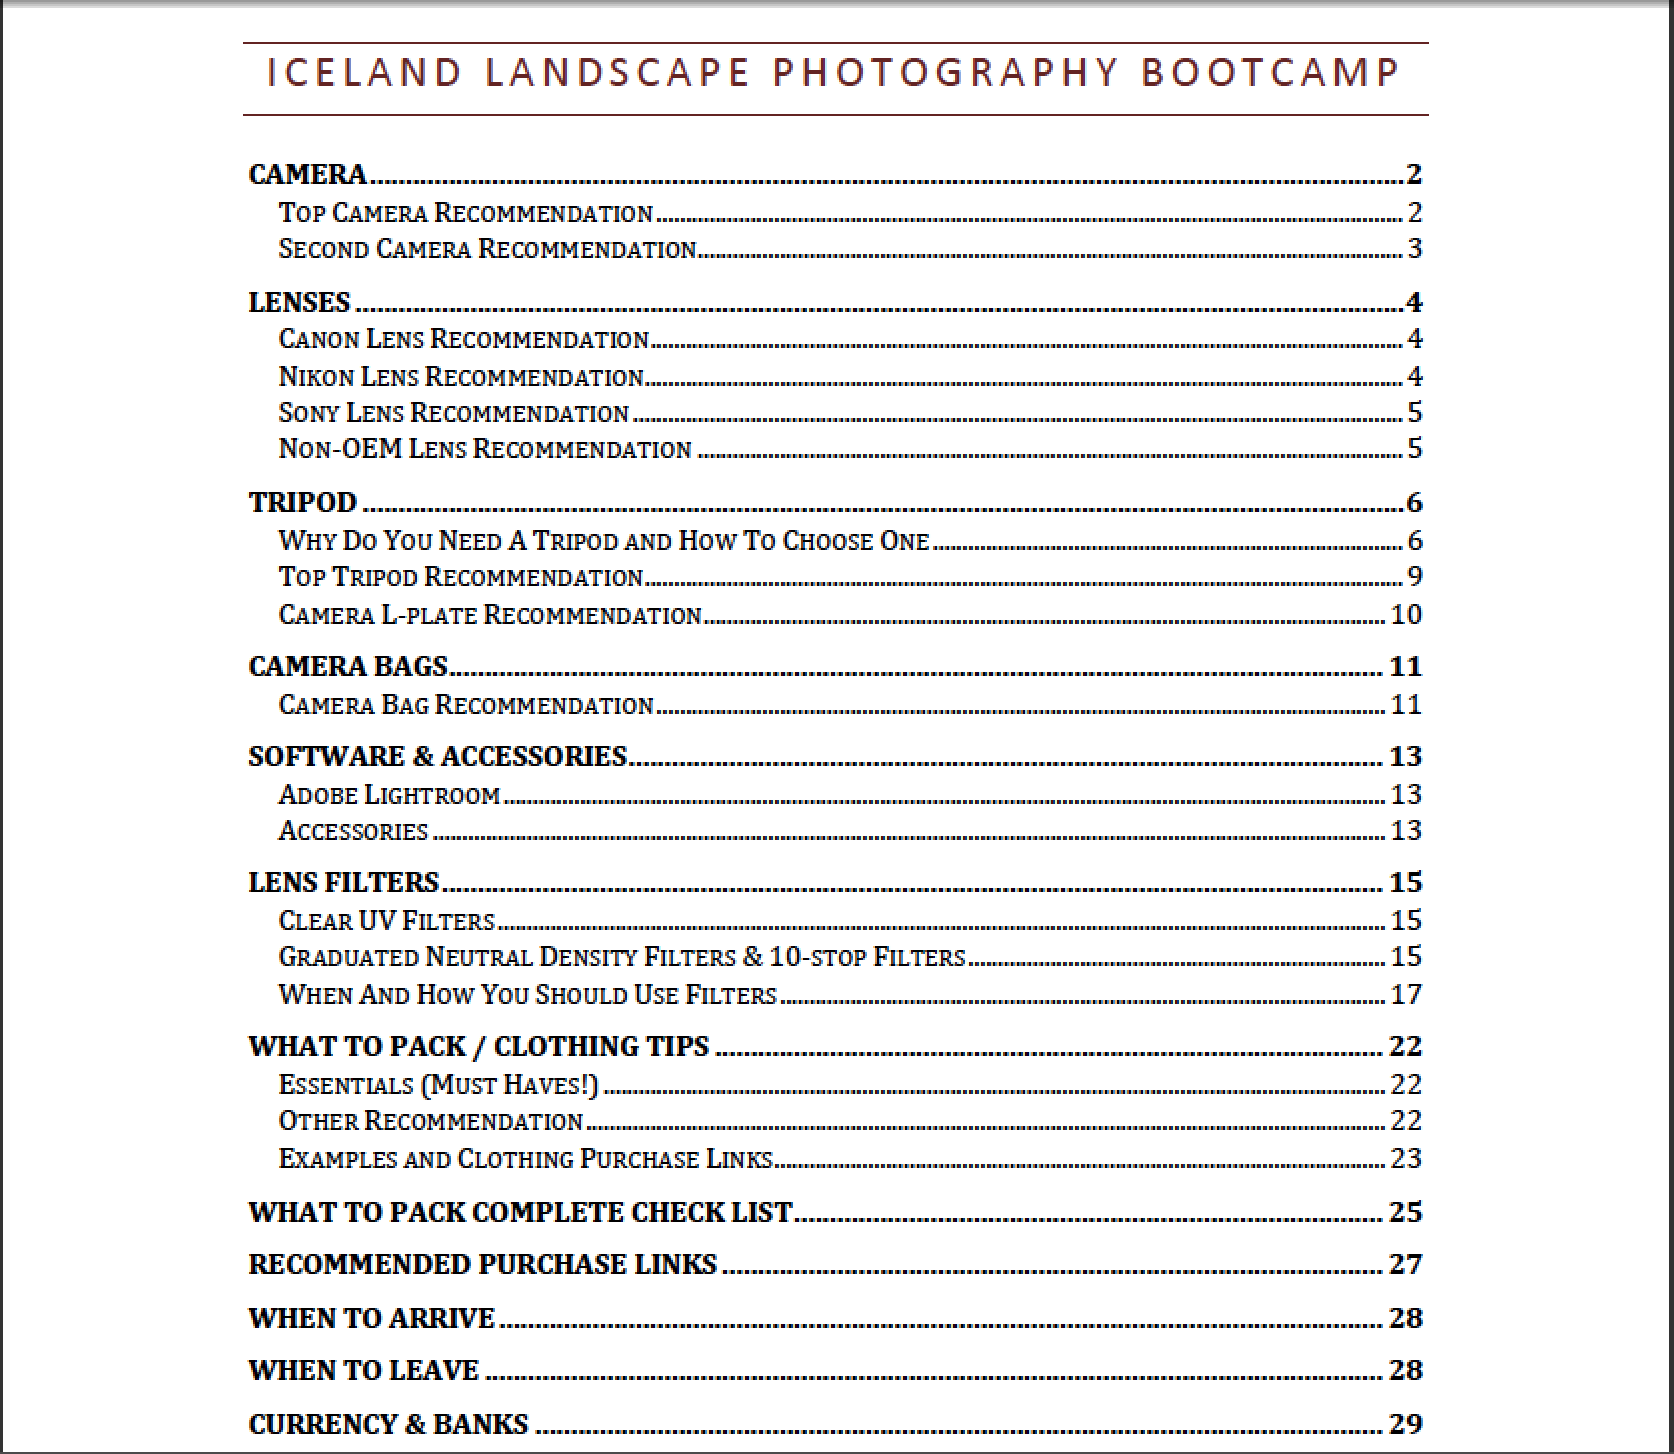 Iceland Landscape Photography Bootcamp - Free E-book